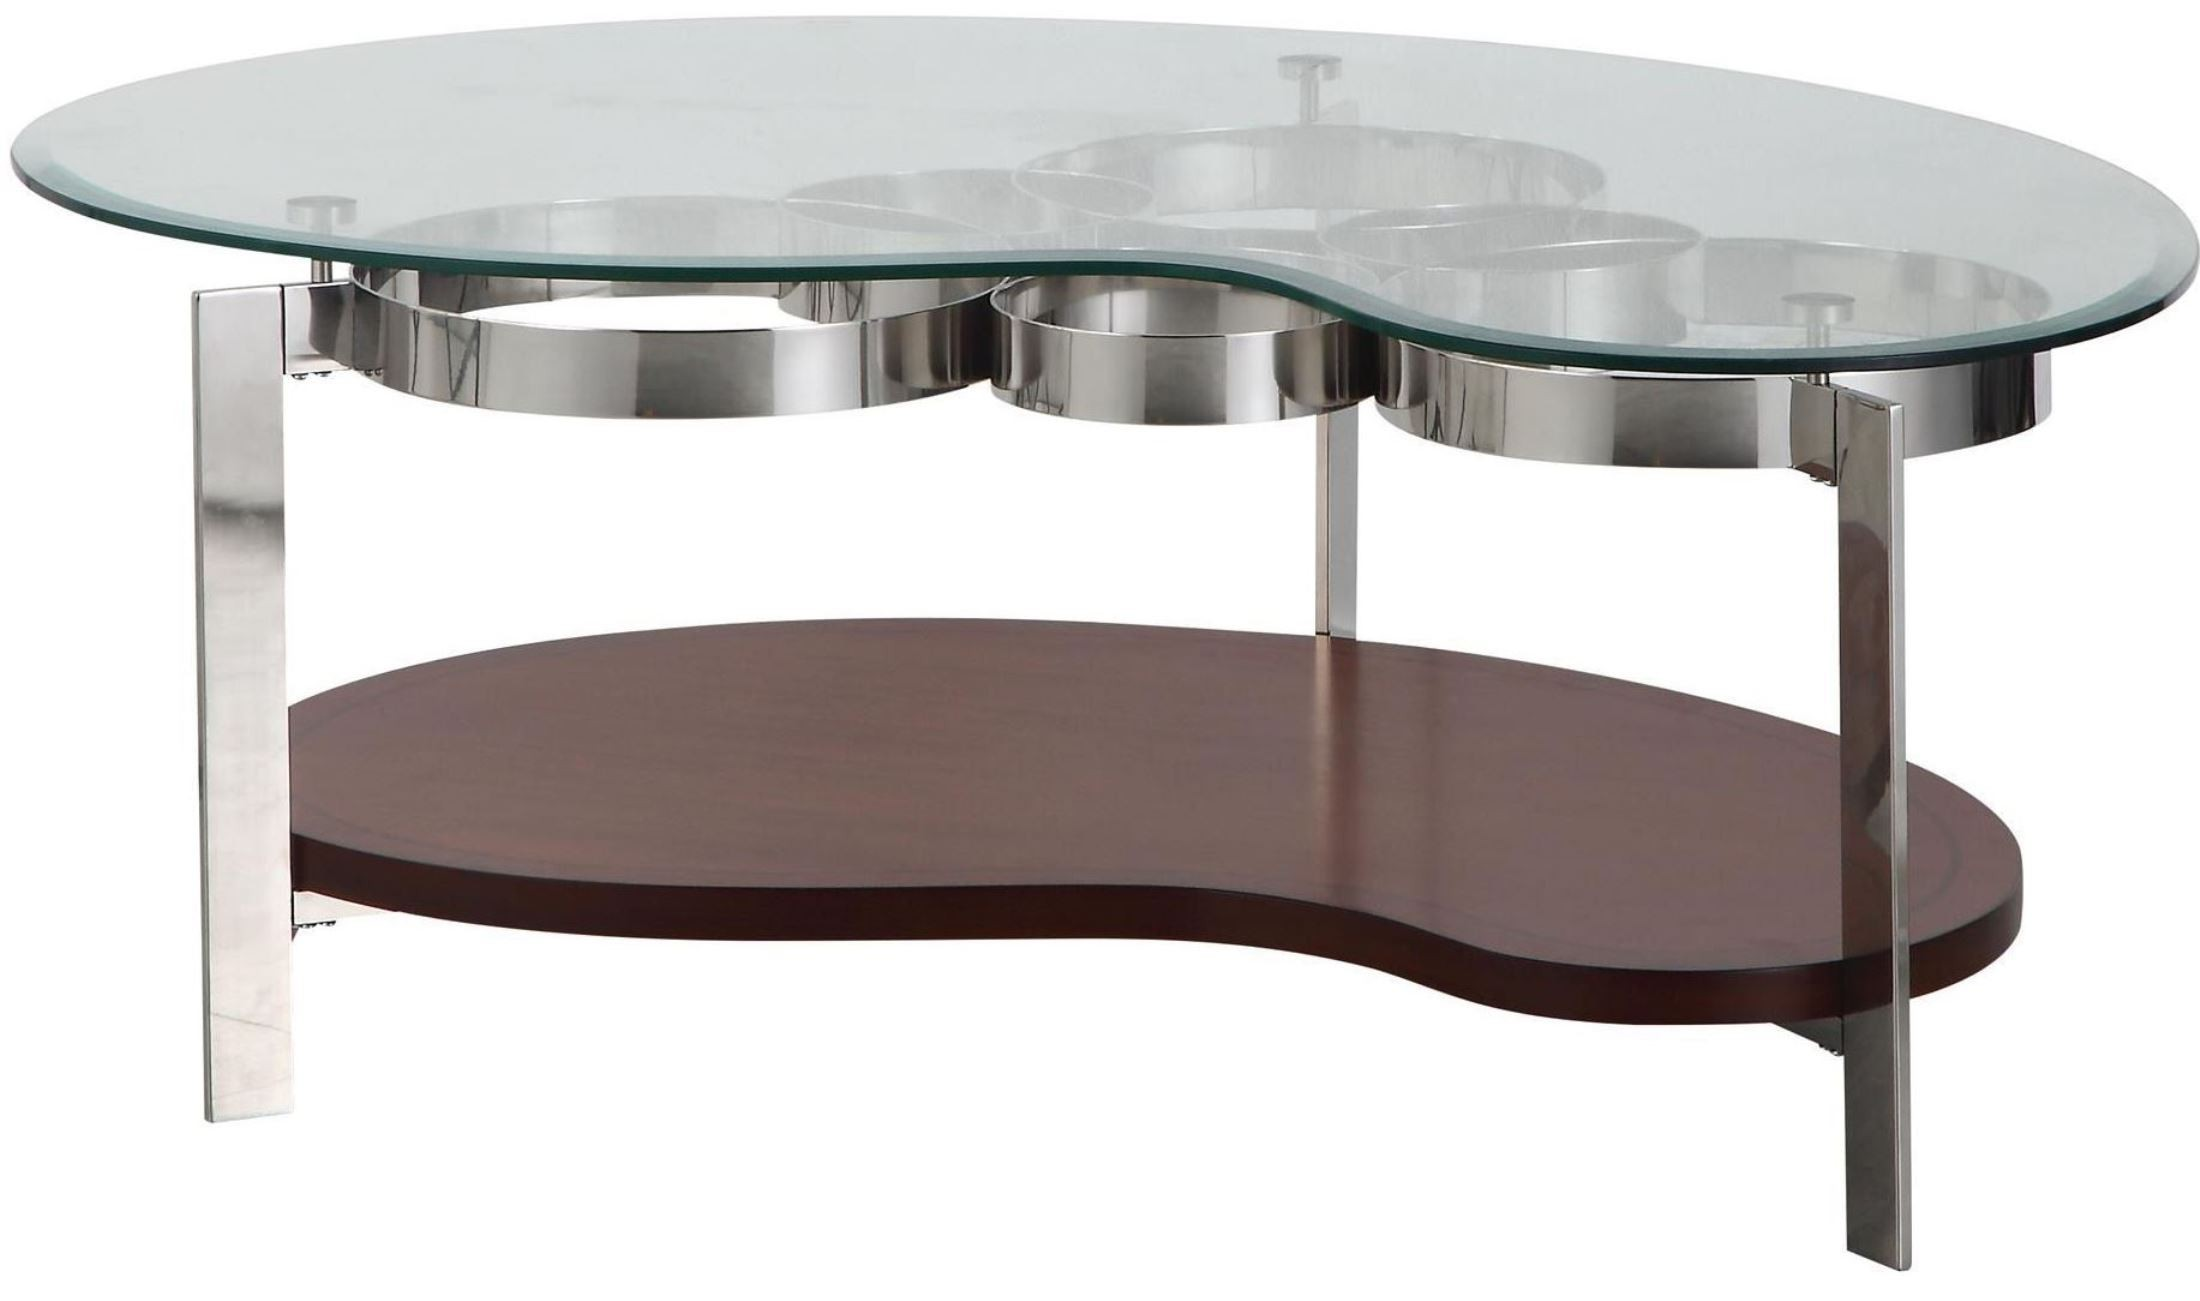 Mars Rustic Brown Cocktail Table From Steinworld 411 019 Coleman Furniture